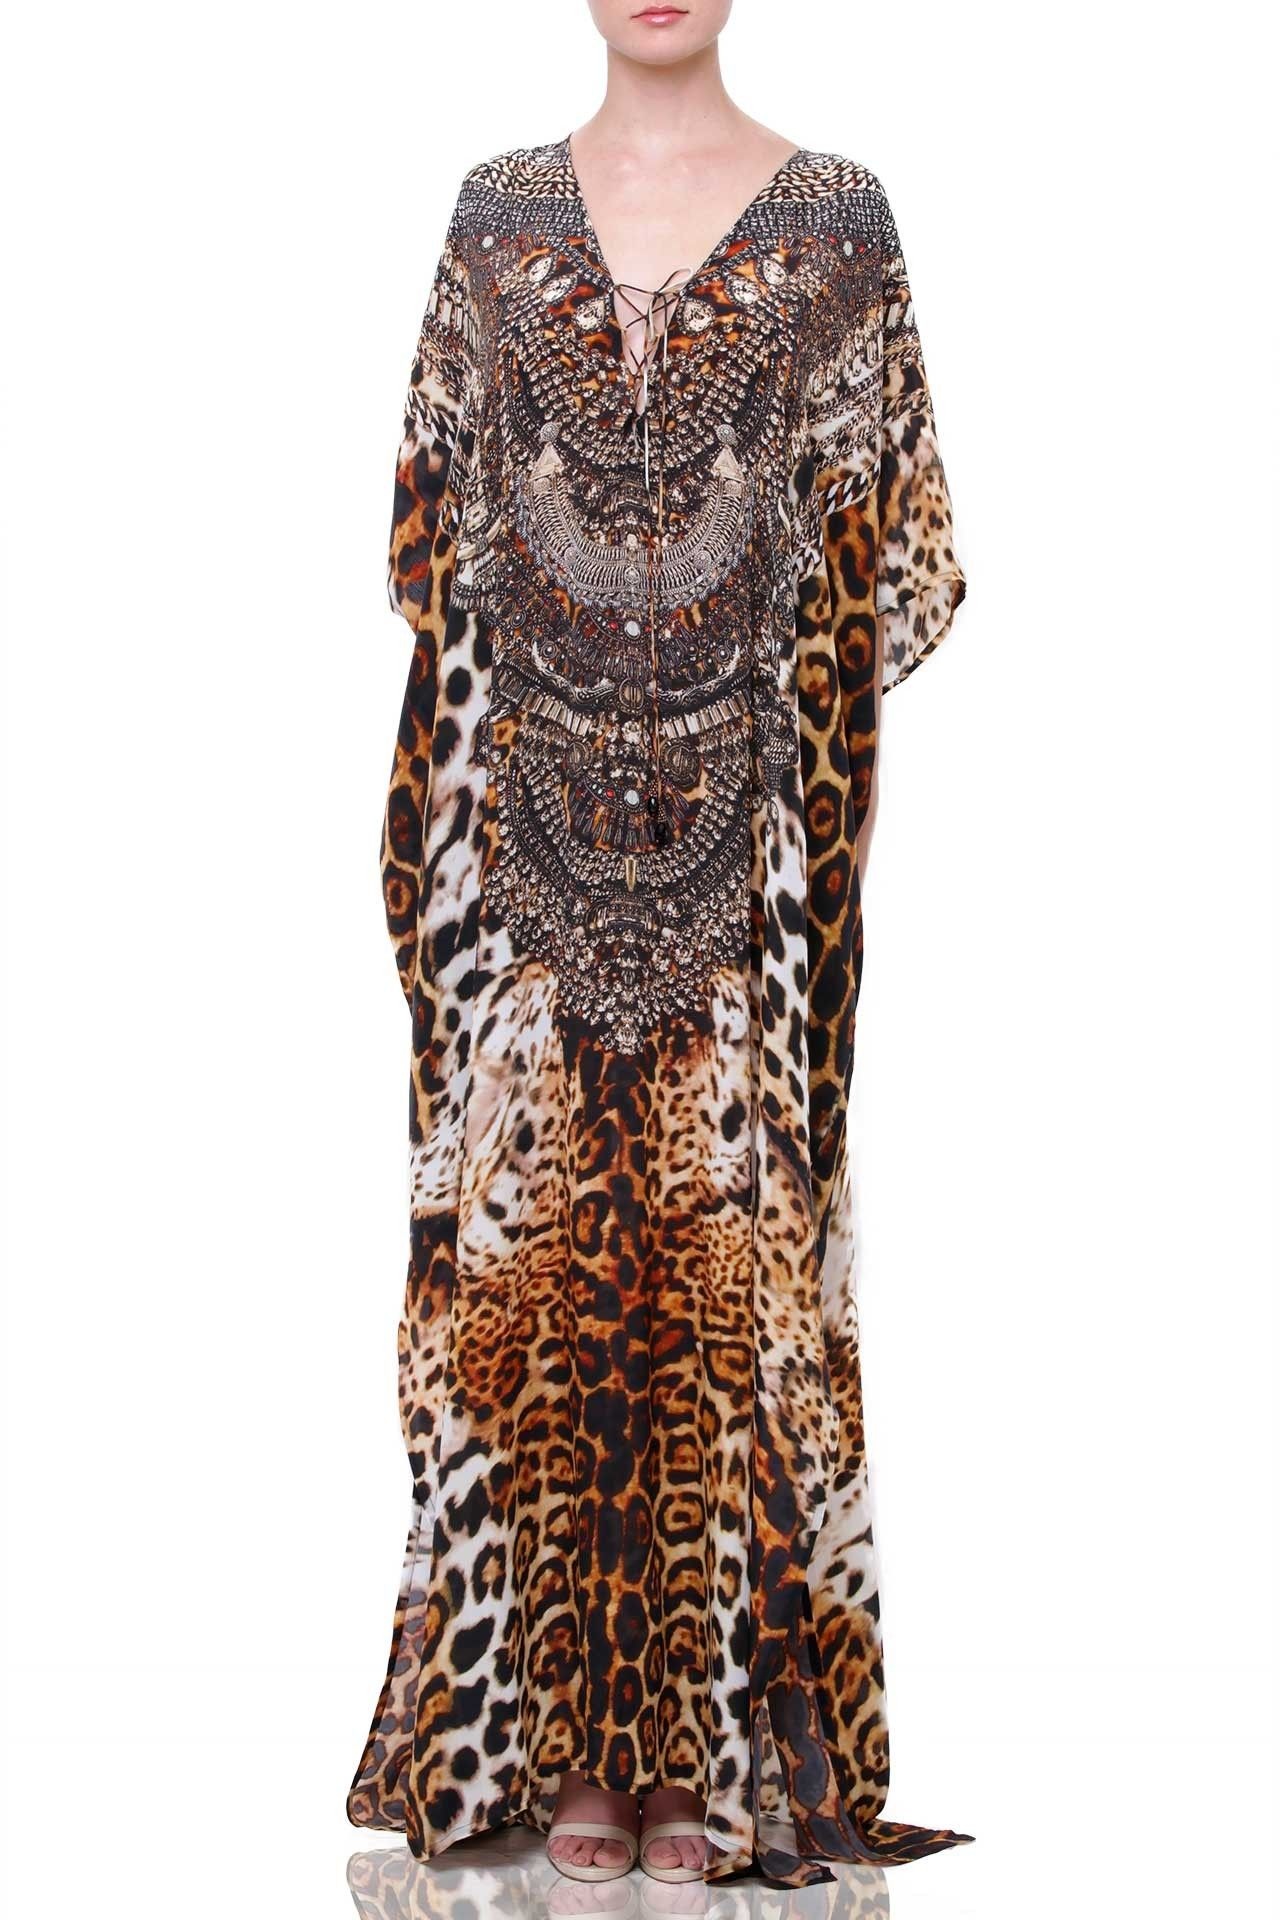 cbb94a53d0ea Luxury Lace Up Kaftan [2018 Leopard Prints] Up to 50% Off - Shahida Parides®